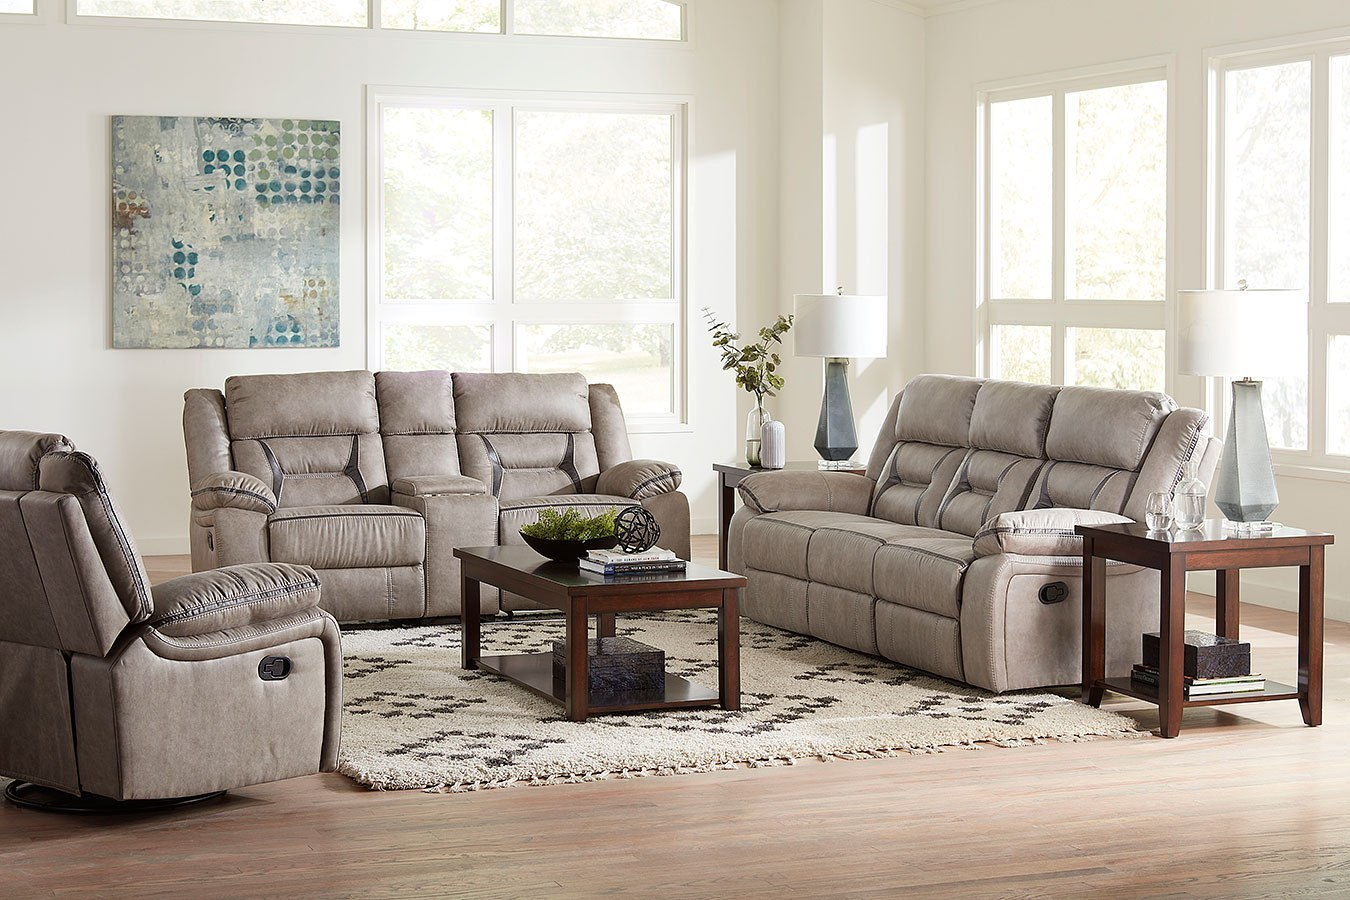 Acropolis Reclining Living Room Set By Standard Furniture